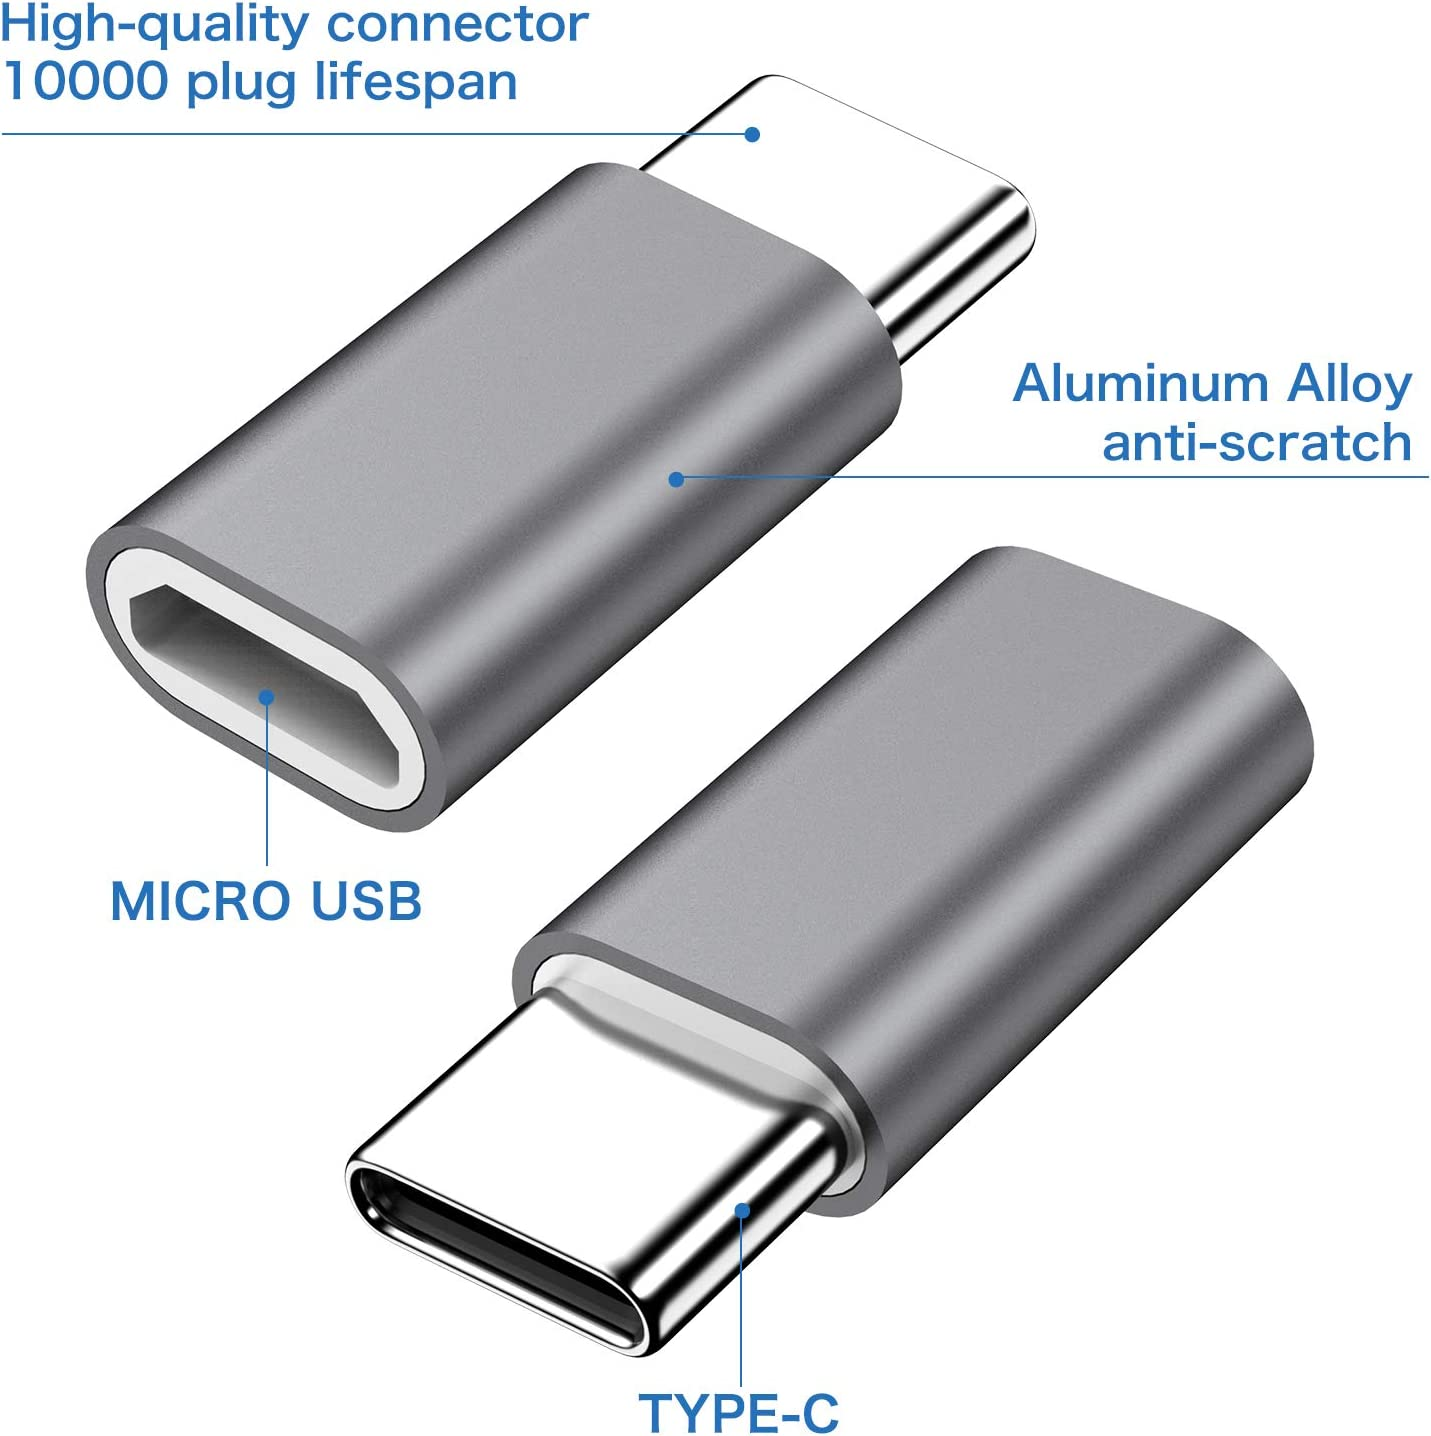 Micro USB to USB C Adapter,8-Pack Aluminum USB Type C Adapter Convert Connector Compatible with Samsung Galaxy S10e S9 S8 Plus Note 9 8 LG V35 V30 V20 G7 G6 G5,Pixel 2 XL,Moto Z2 Z3 Blue